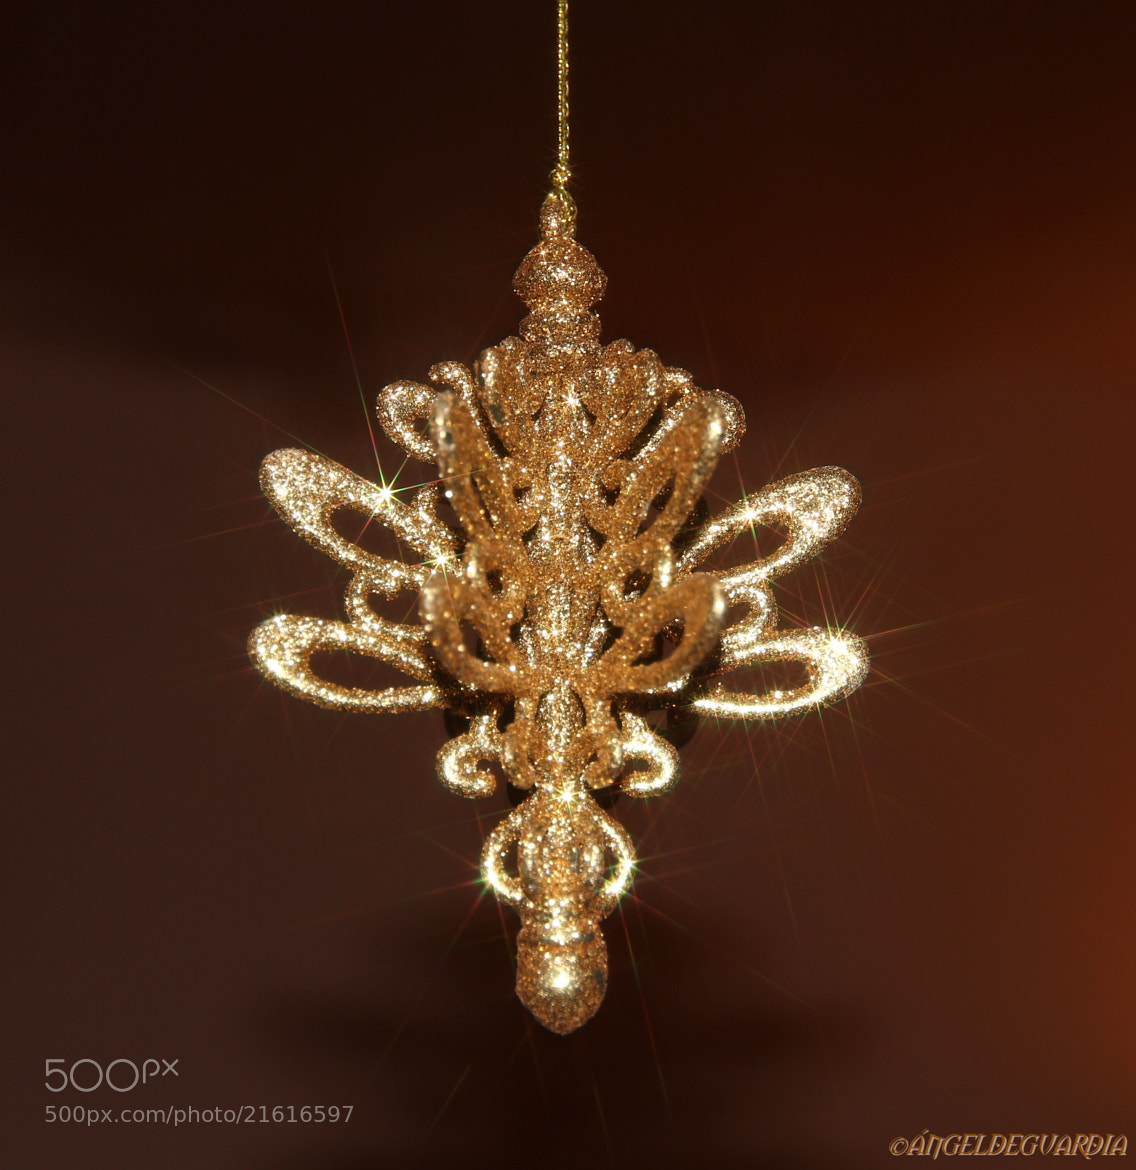 Photograph *christmas decoration* by ÁngelDeGuardia * on 500px